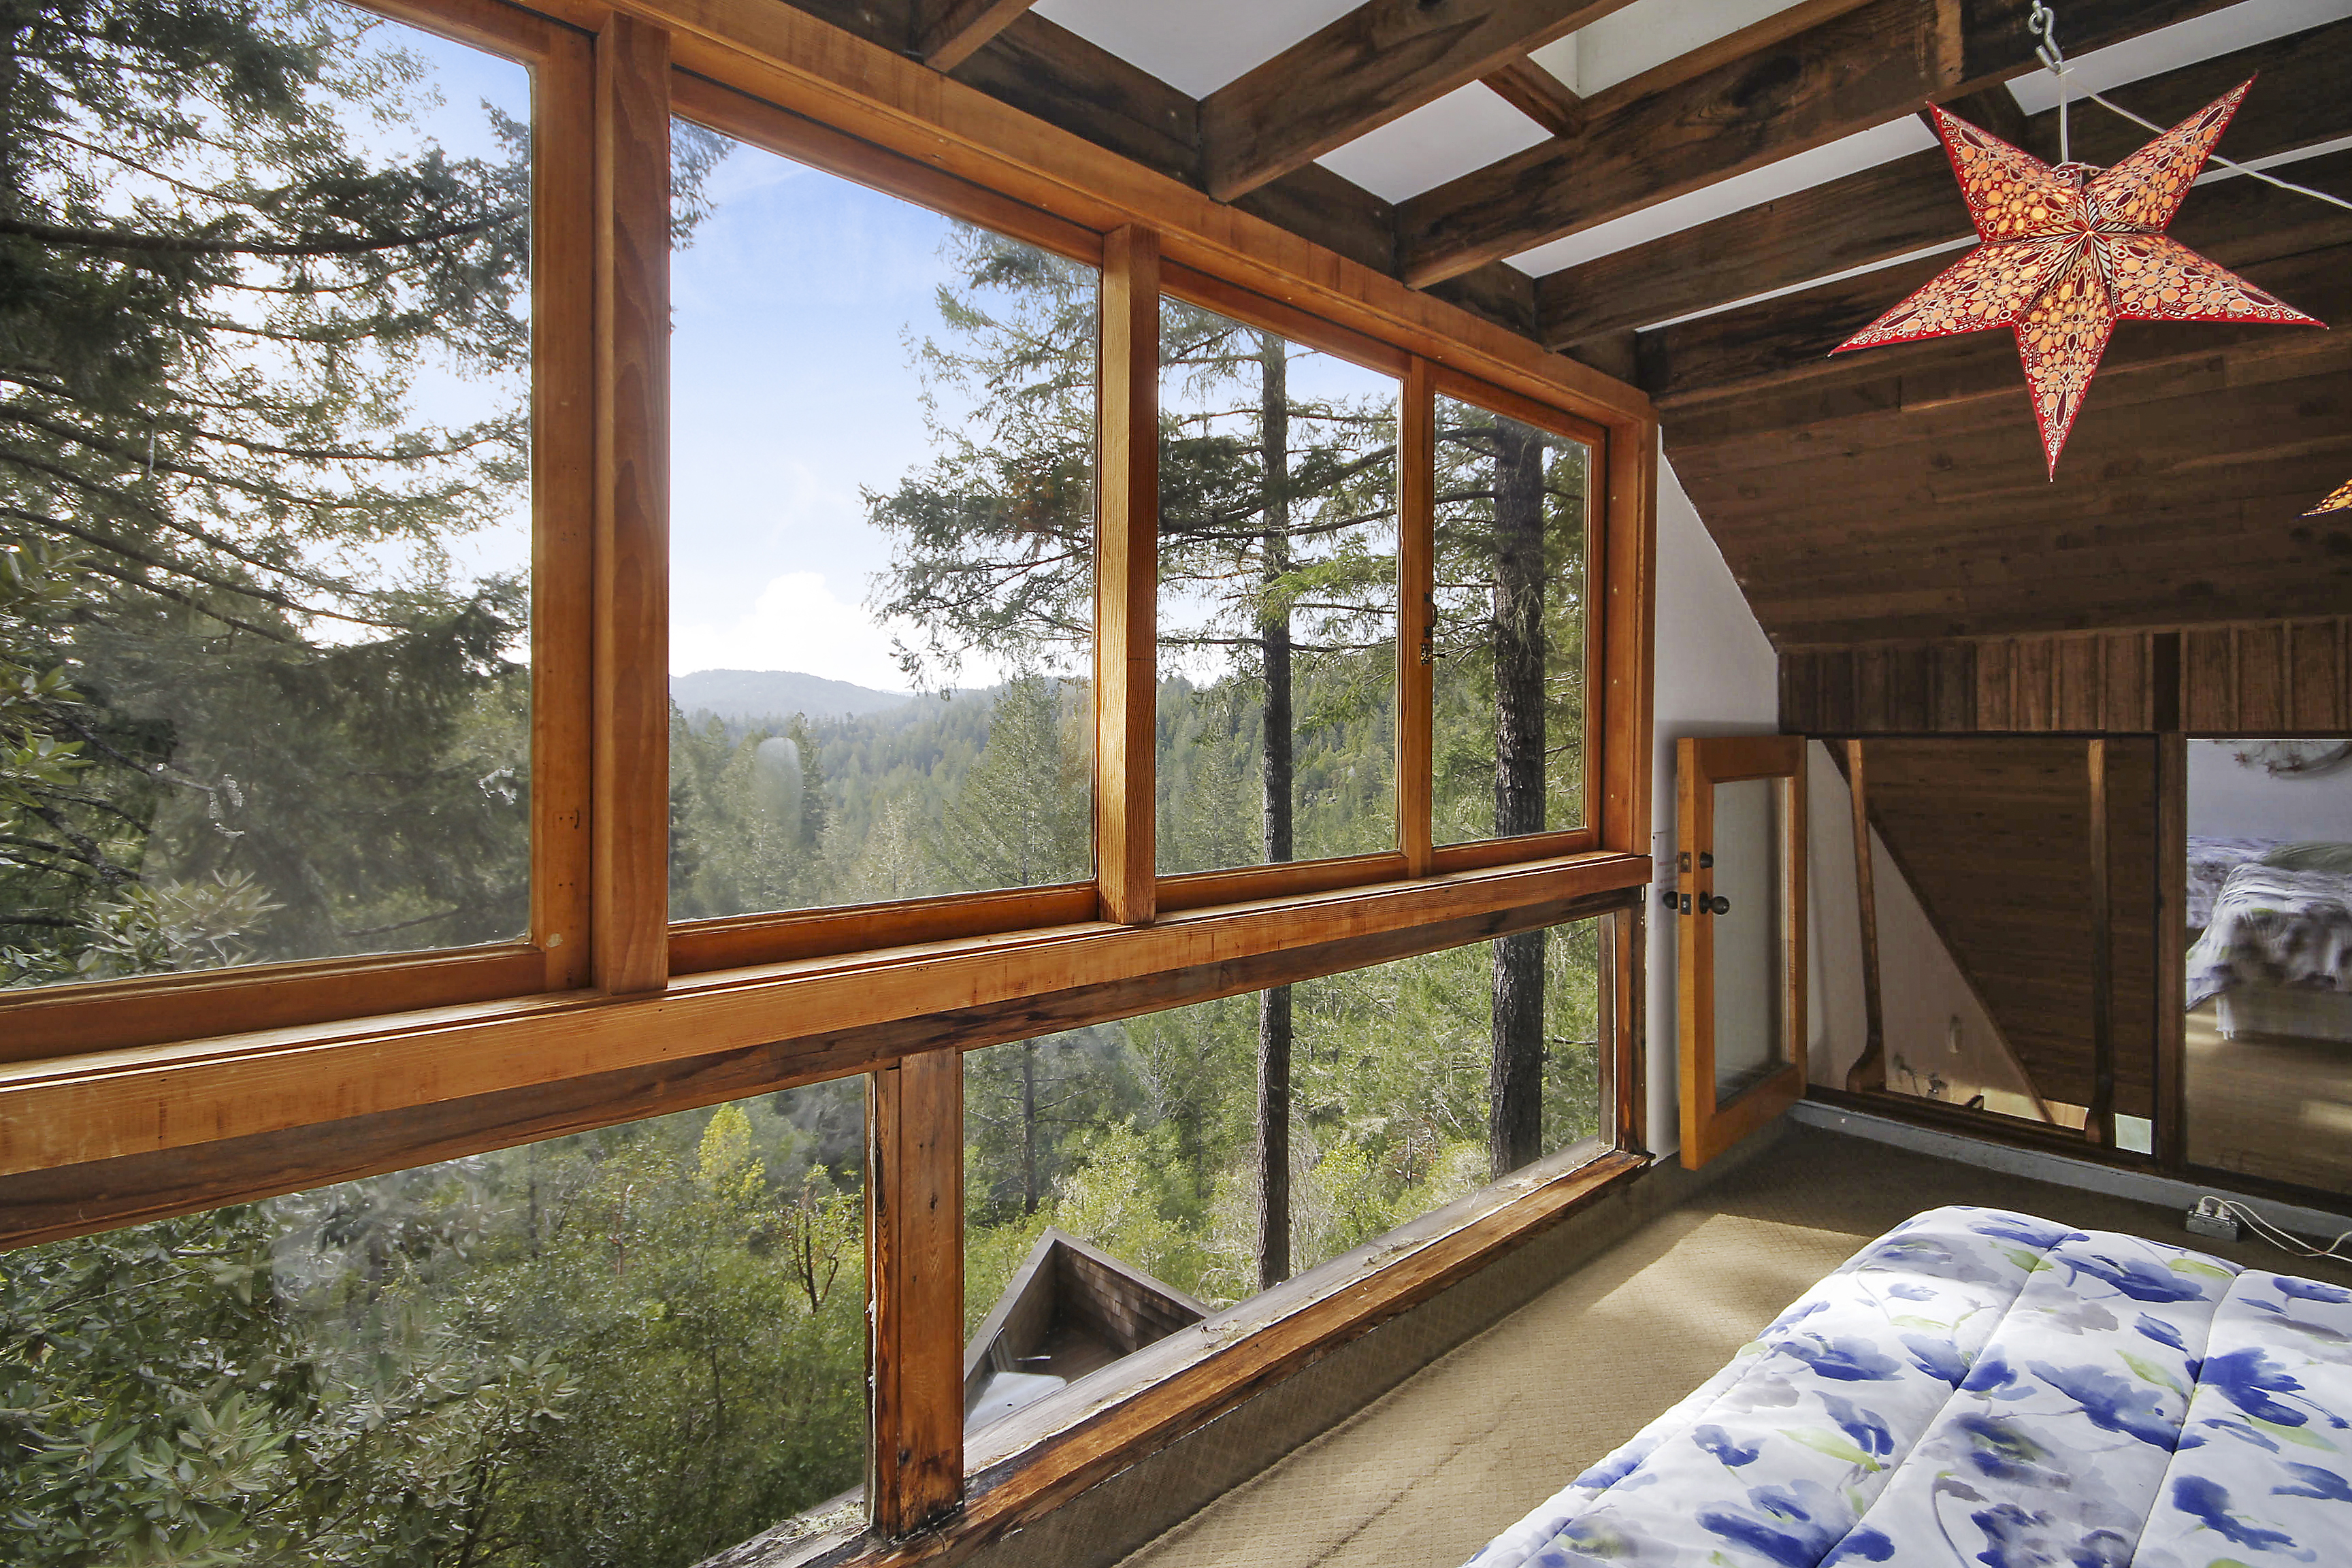 enjoy a luxurious vacation rental in Sonoma County, California